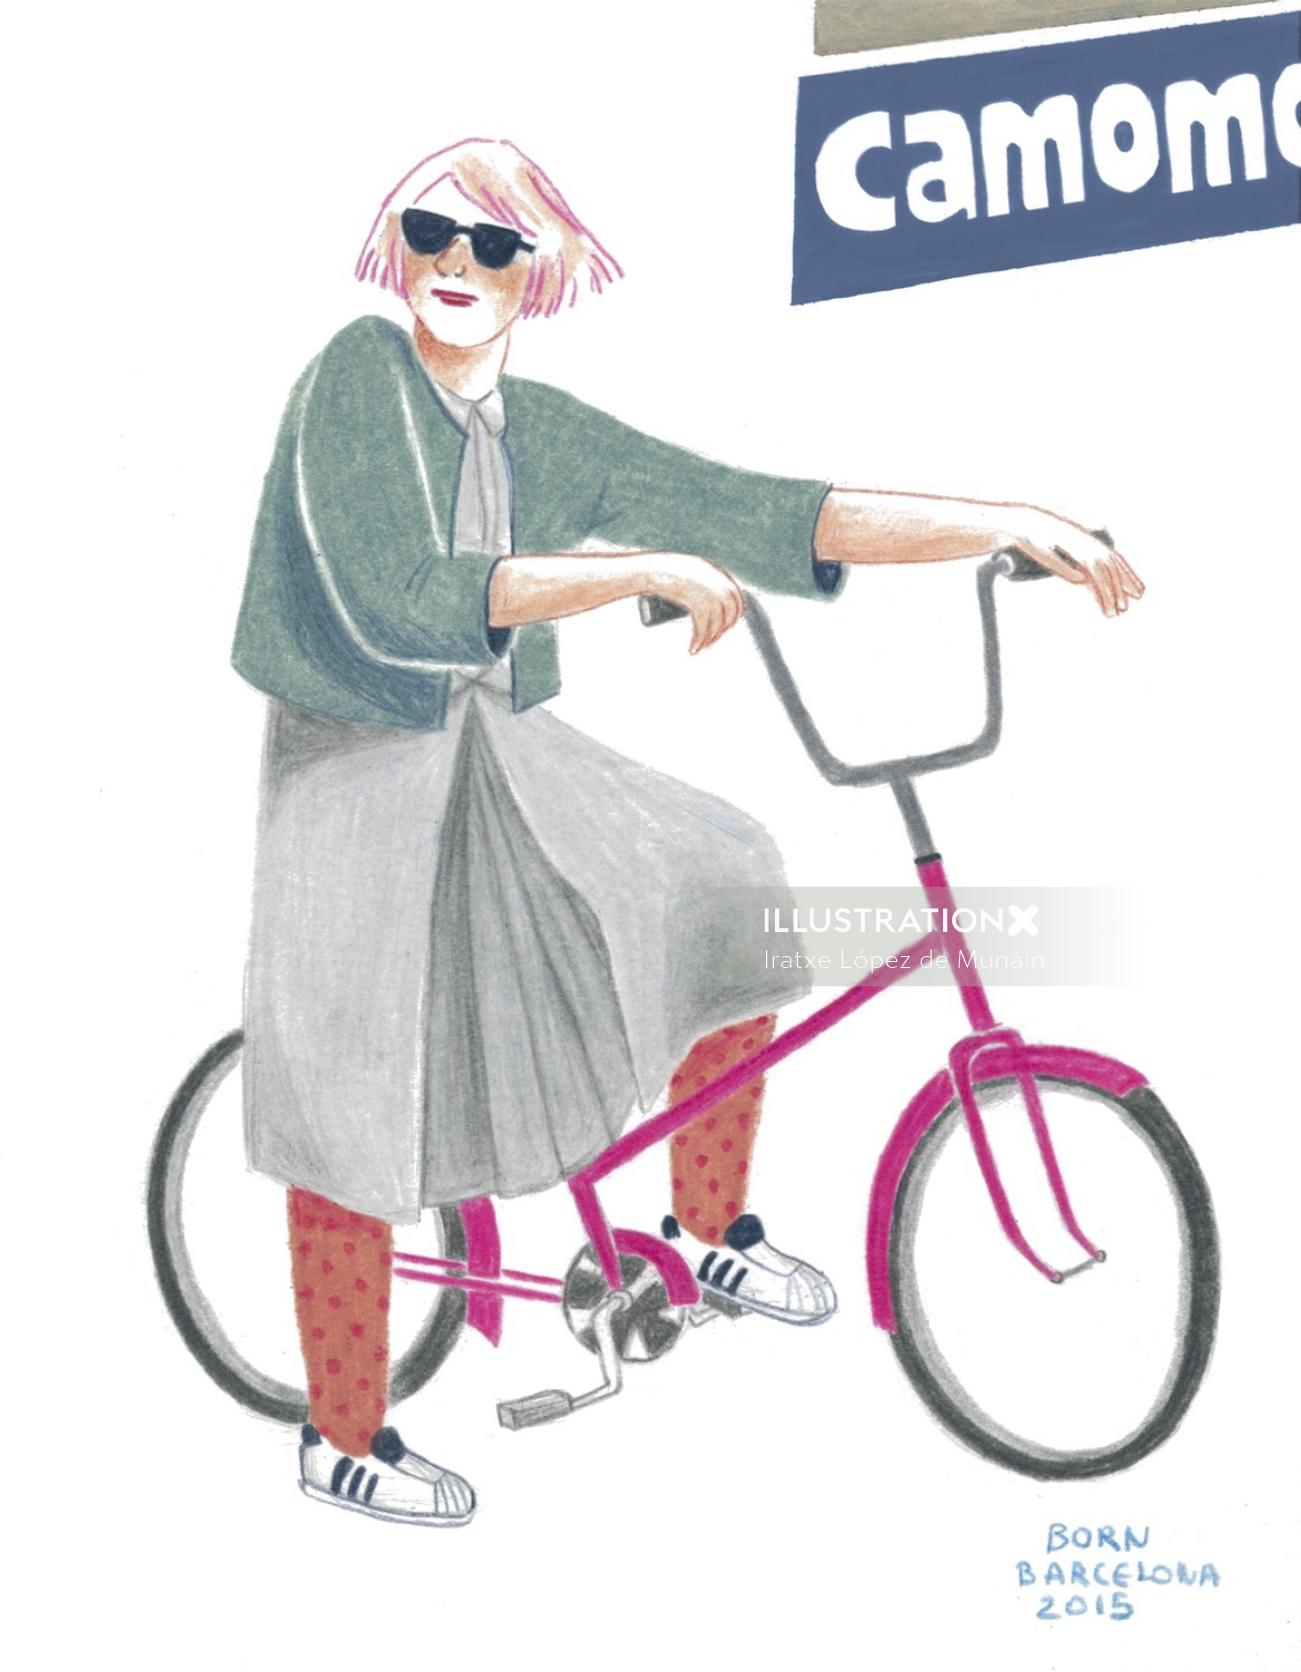 Illustration of lady with bicycle